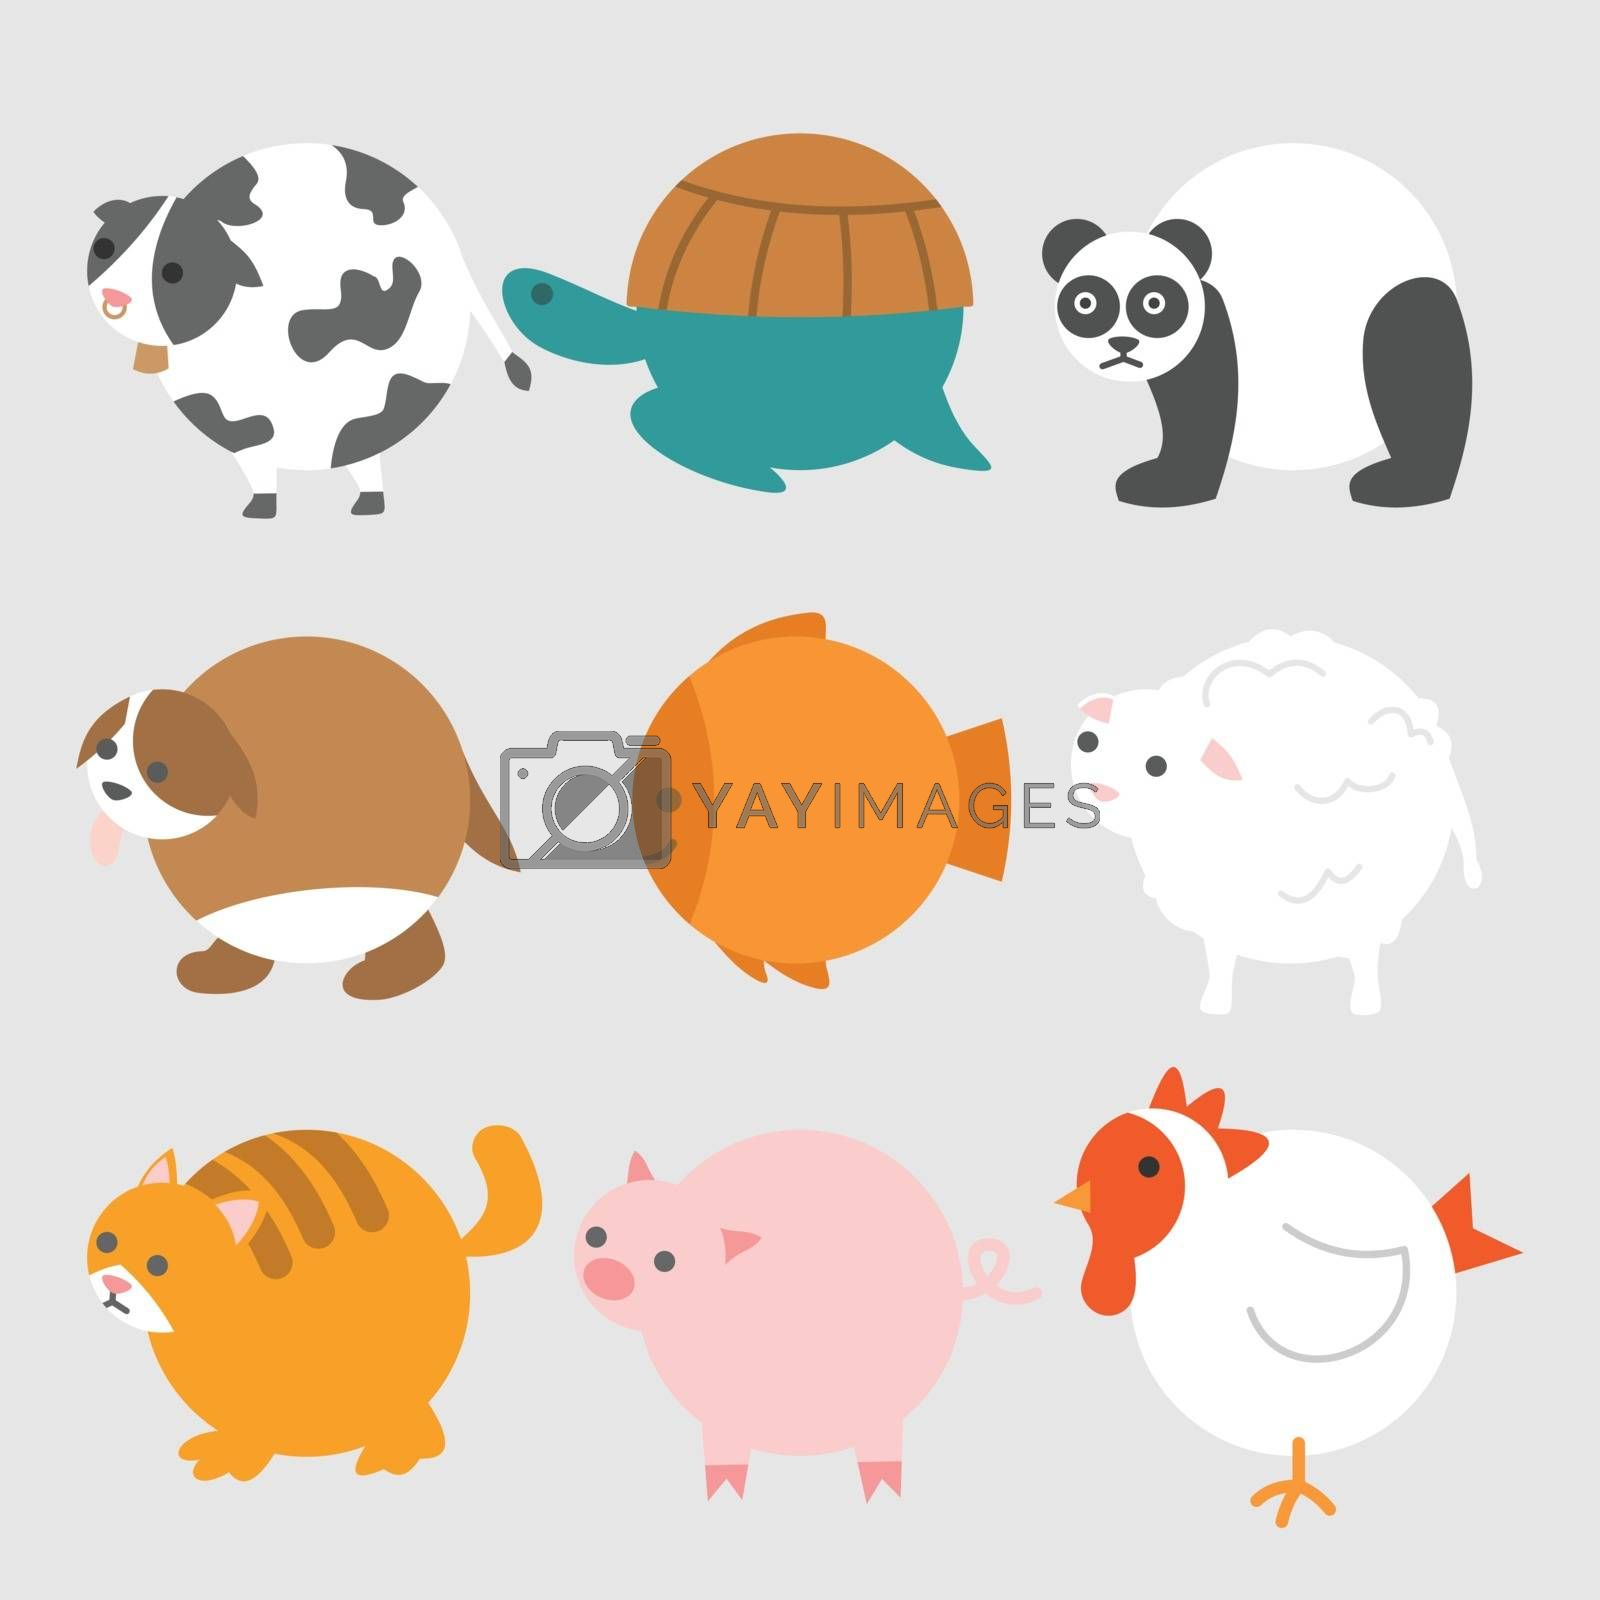 A set of round-shaped animals and pets illustration